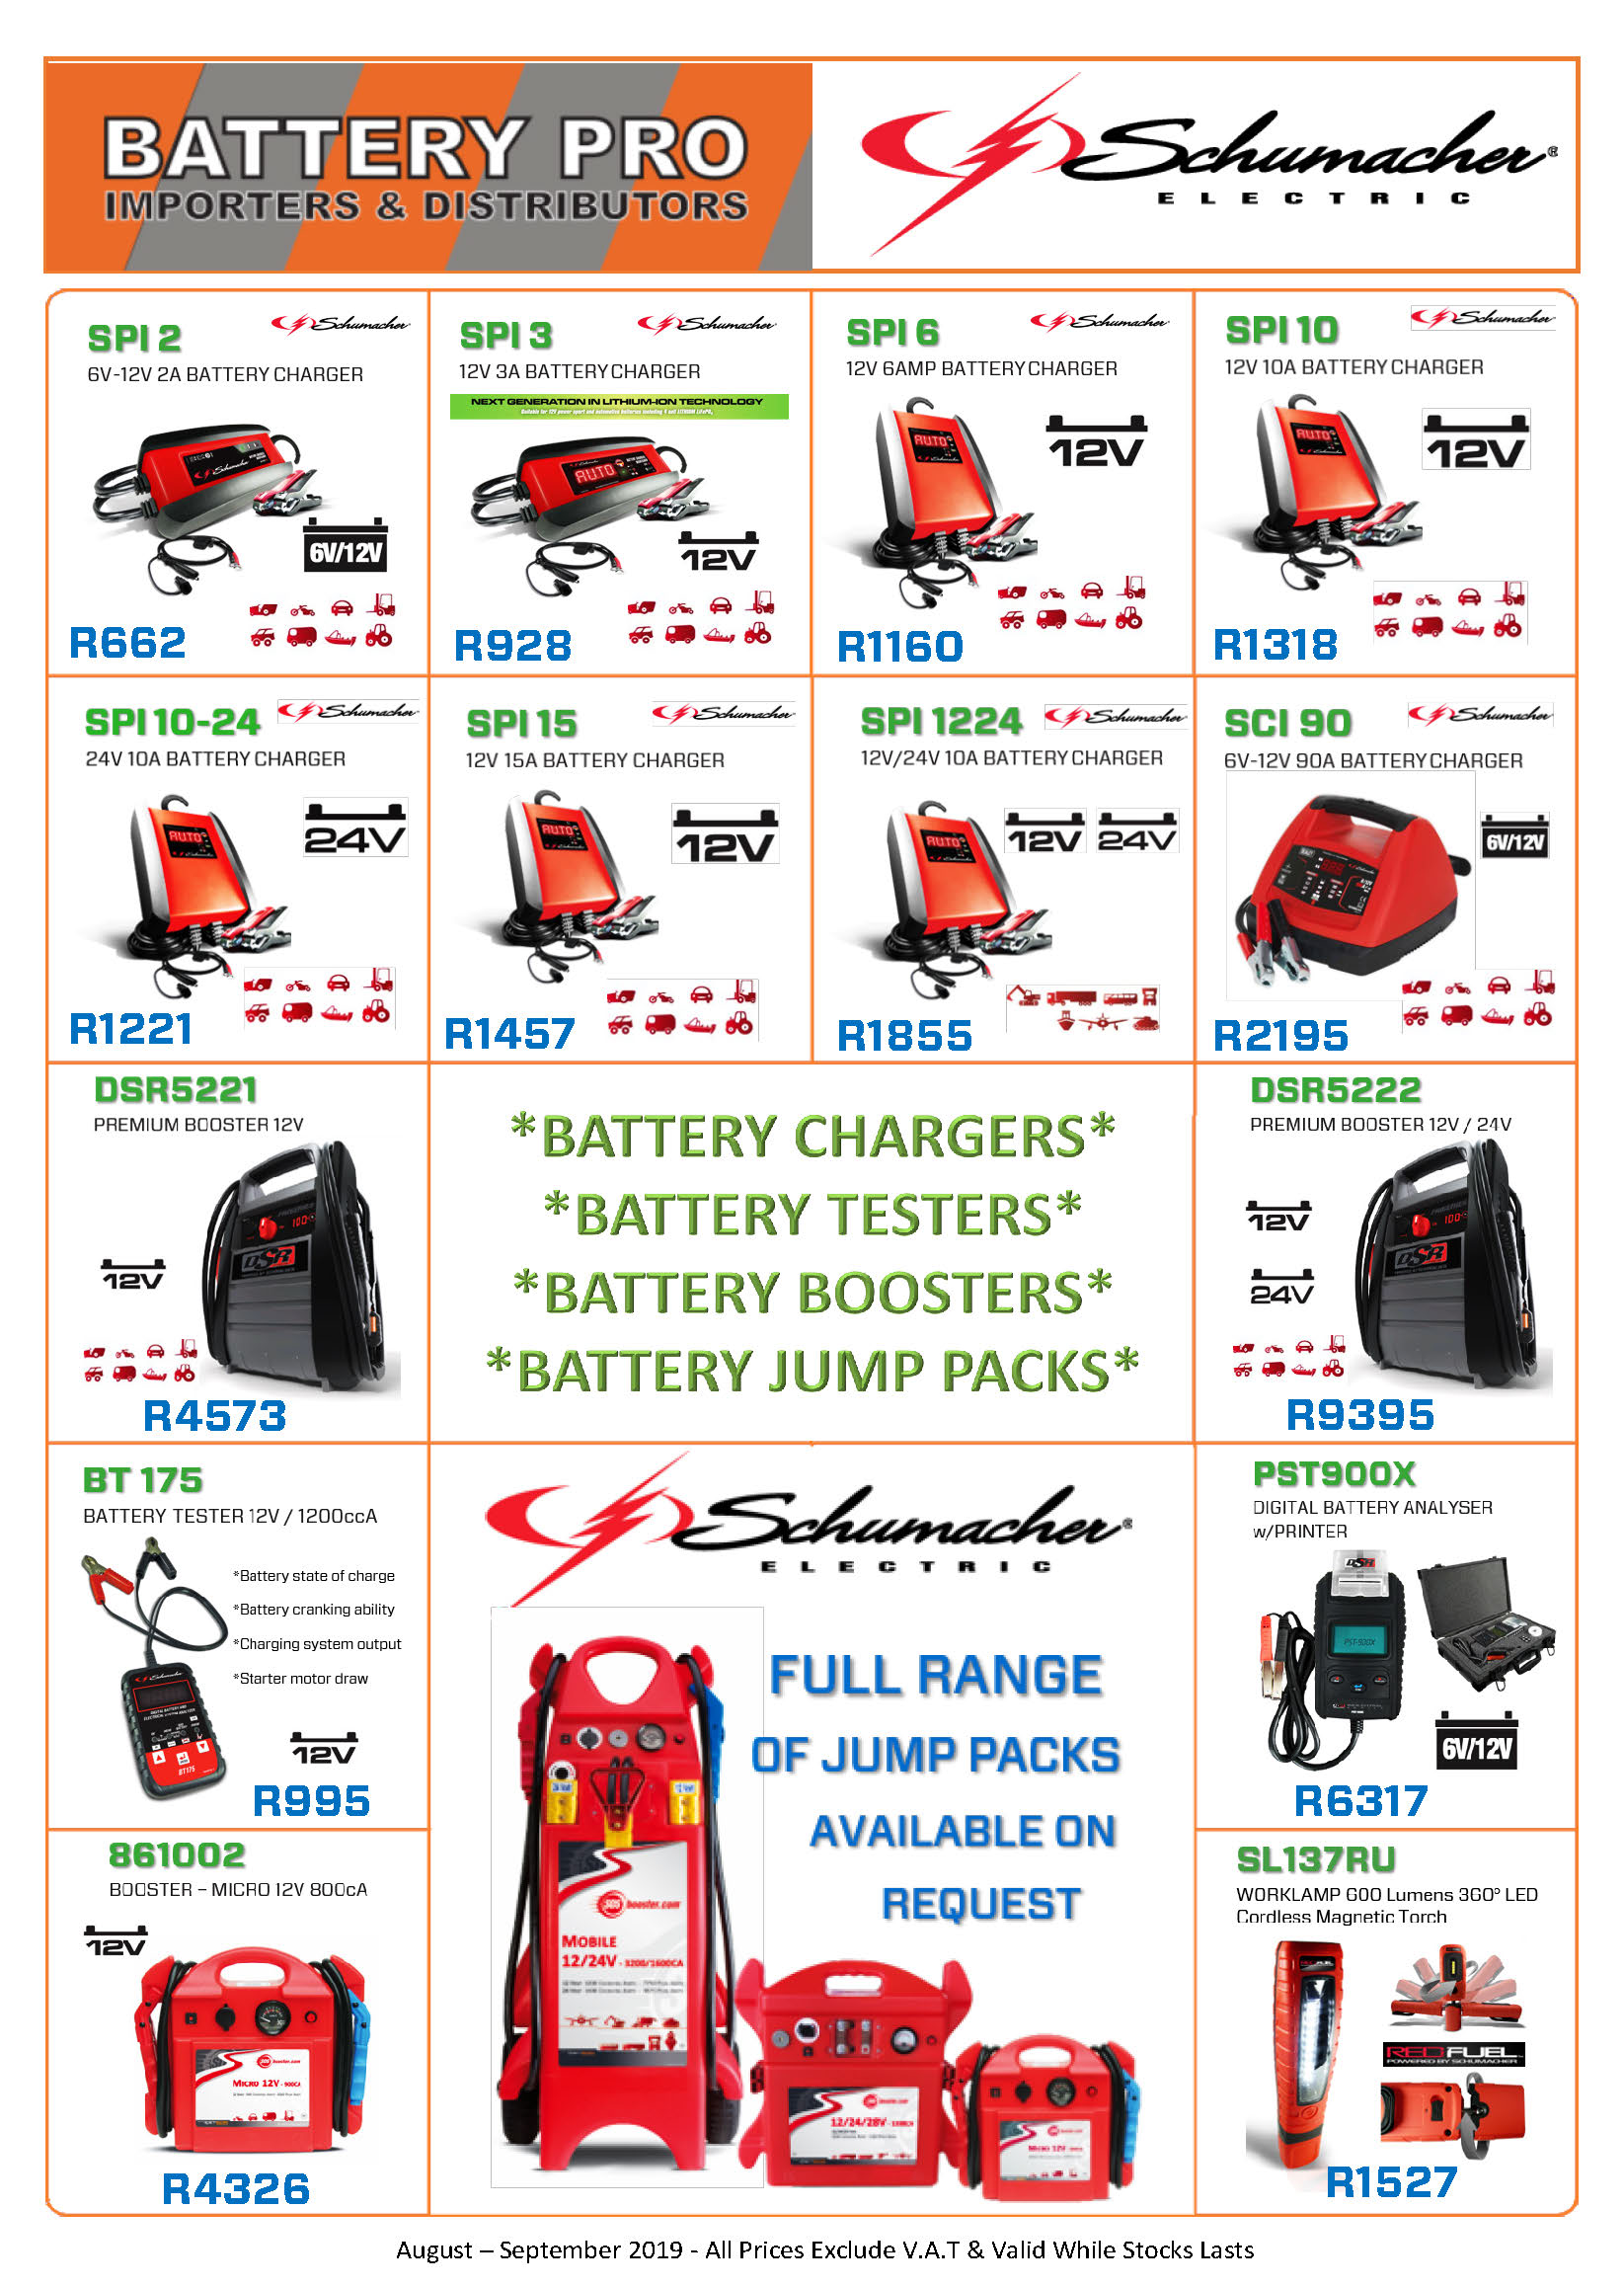 special offers from battery pro